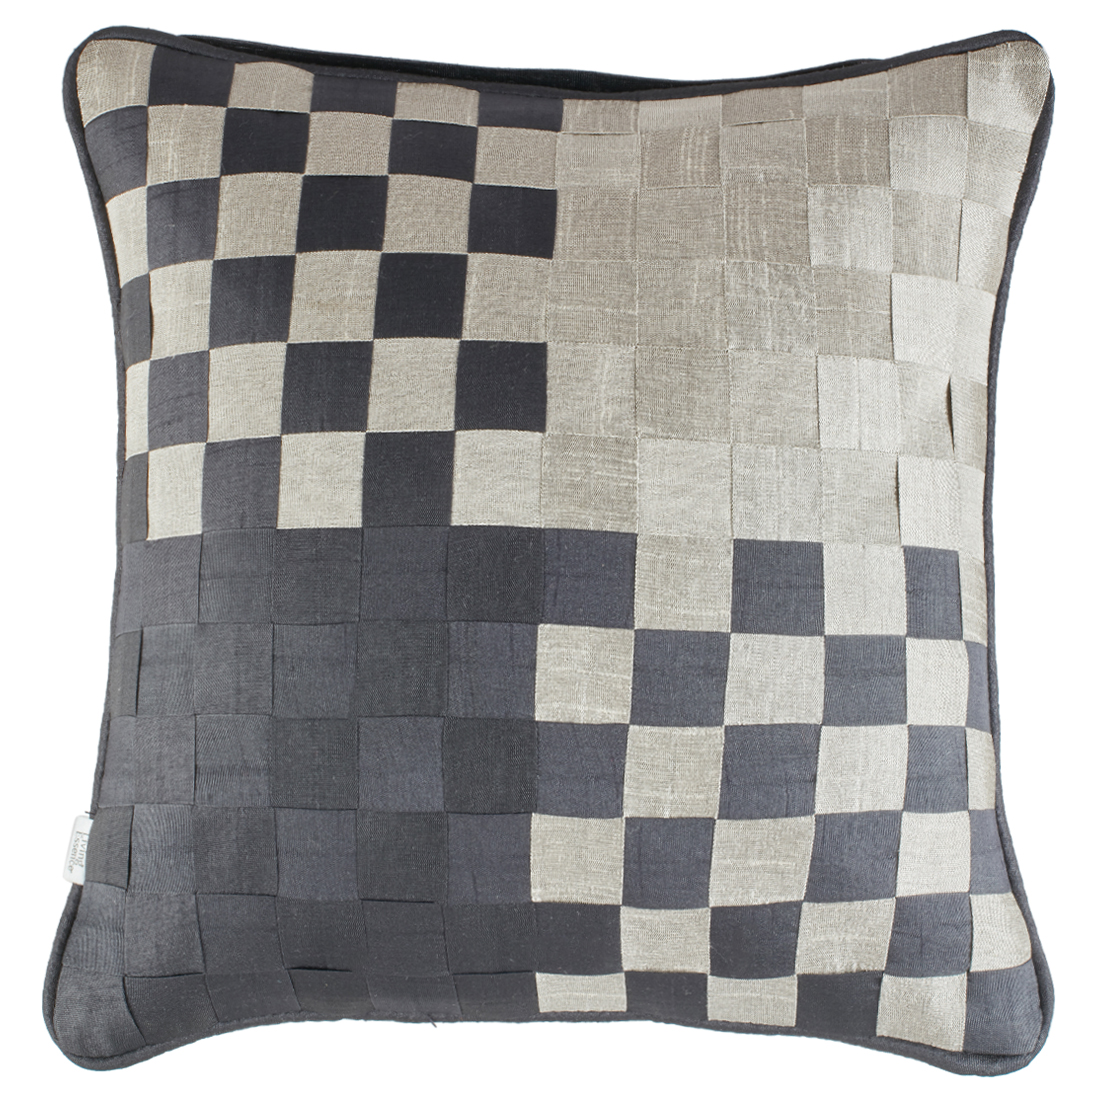 Basket Polyester Cushion Covers in Black Colour by Living Essence